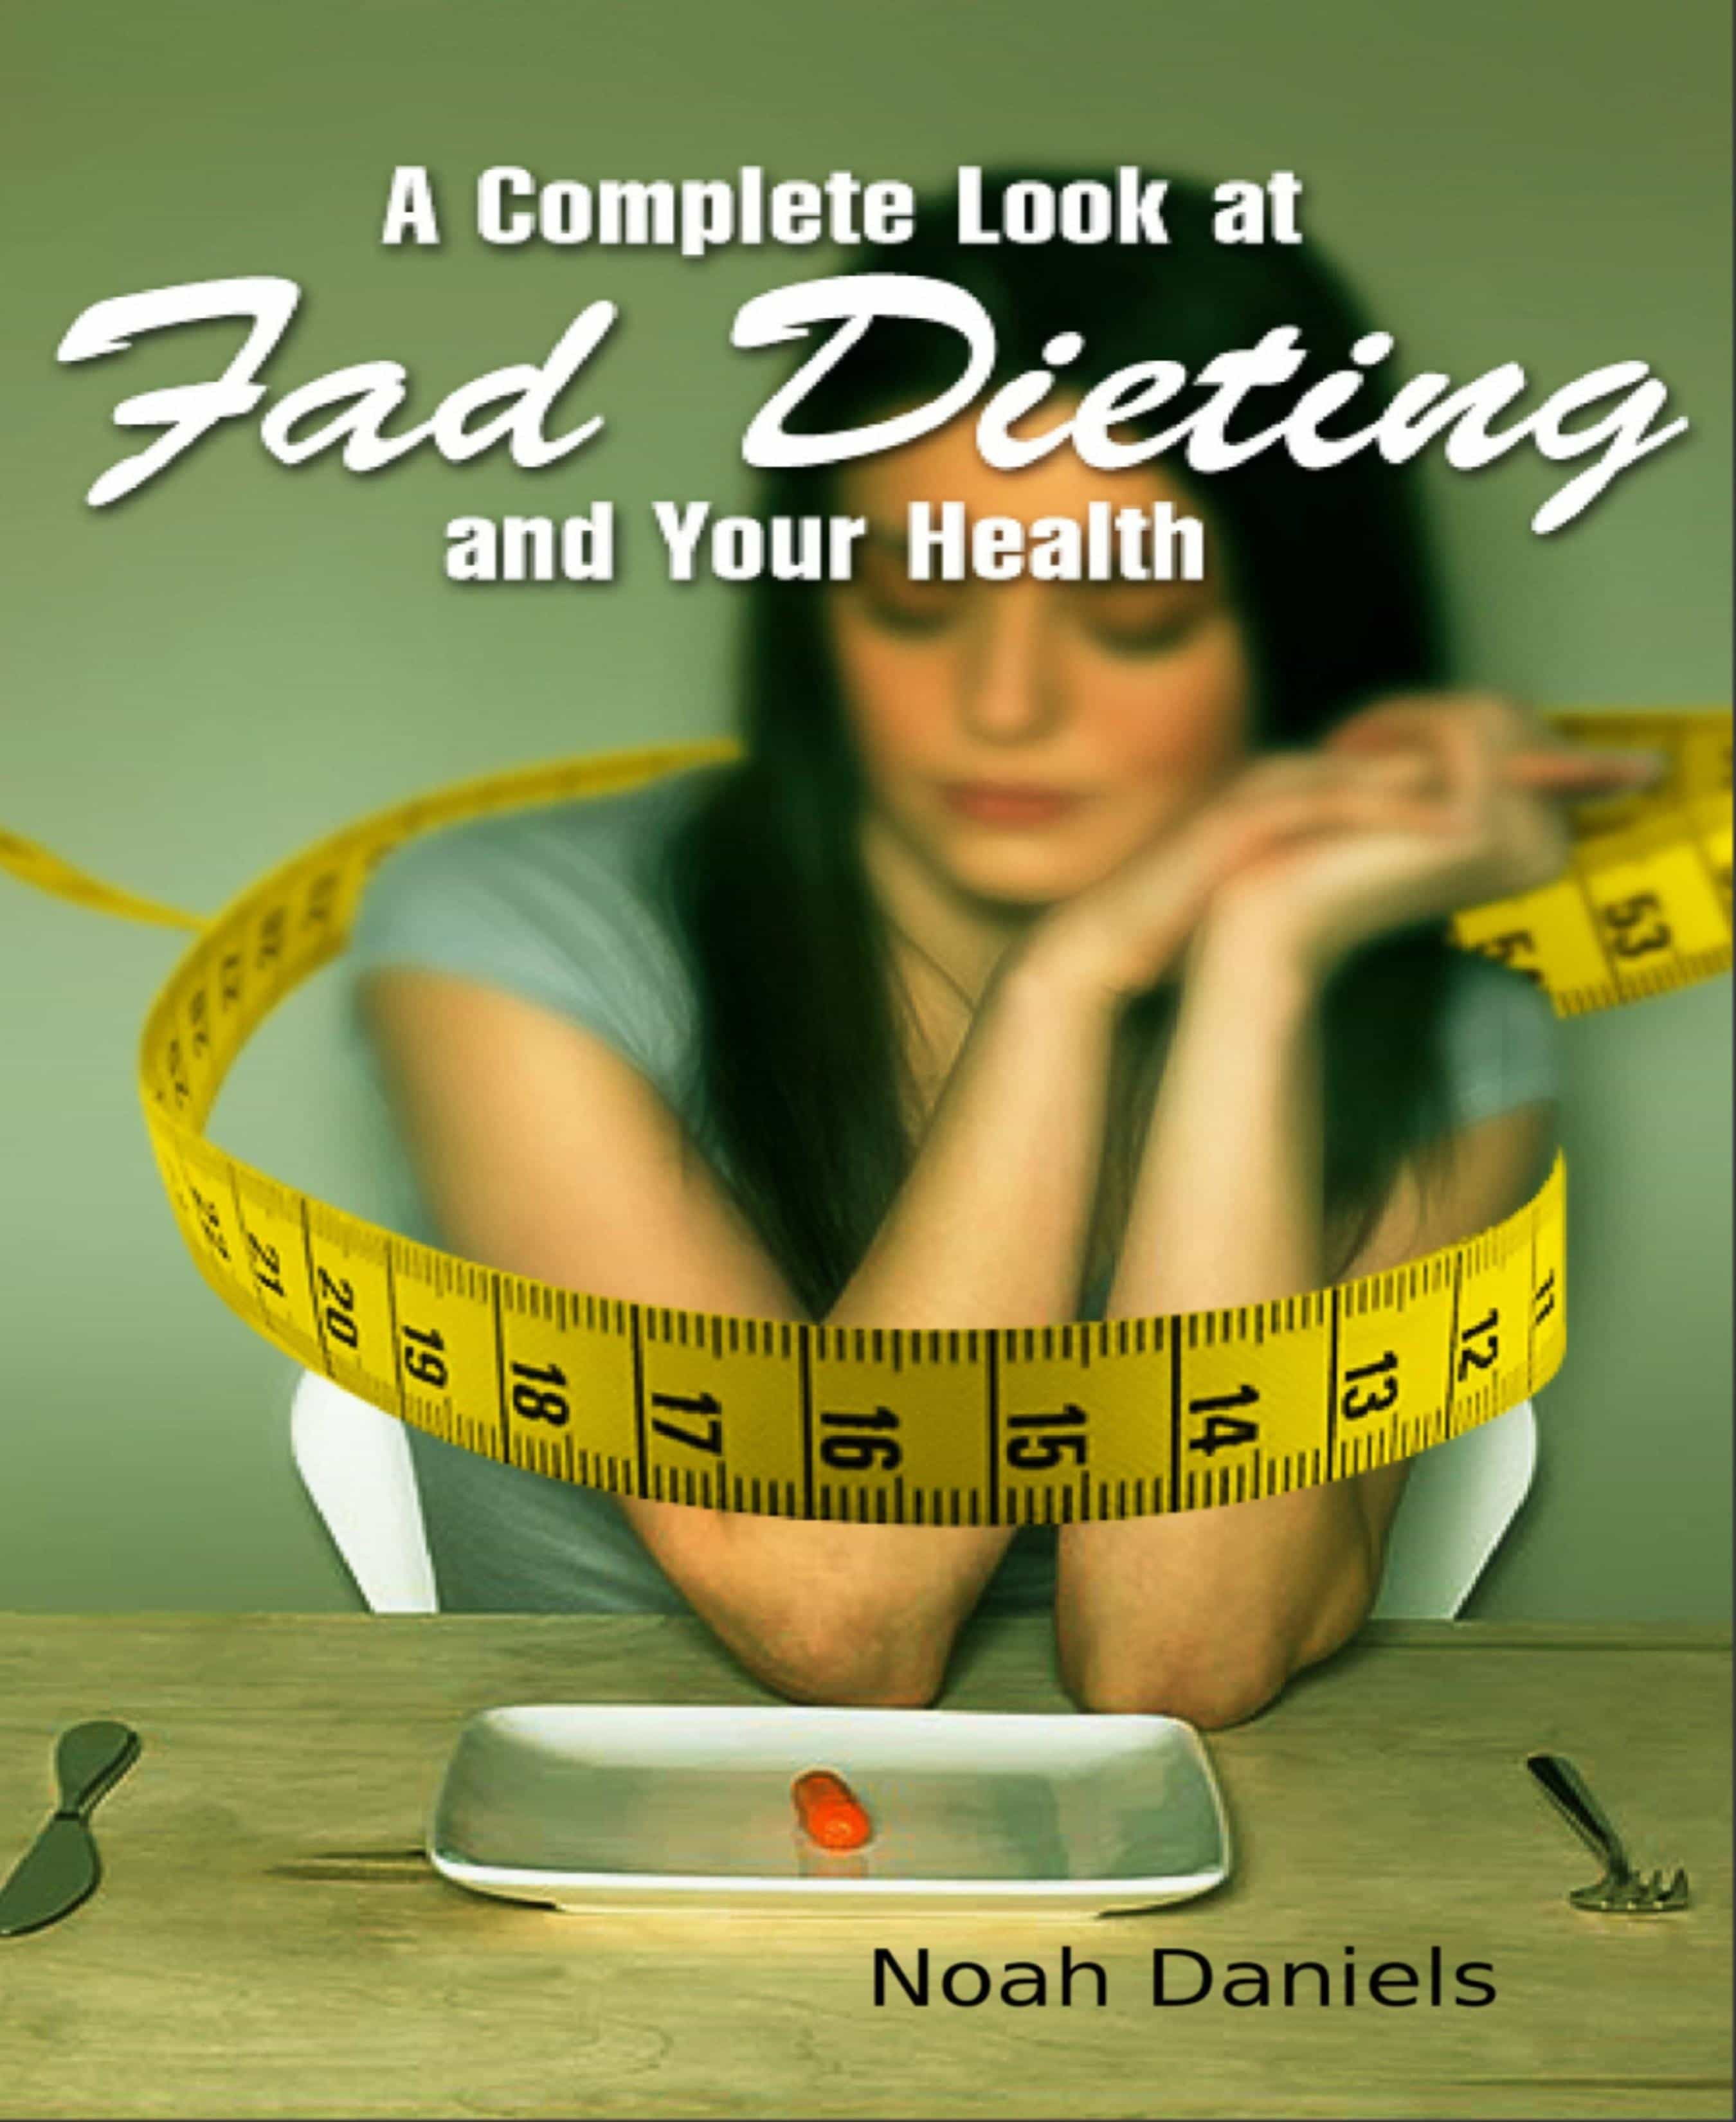 A COMPLETE LOOK AT FAD DIETING AND YOUR HEALTH